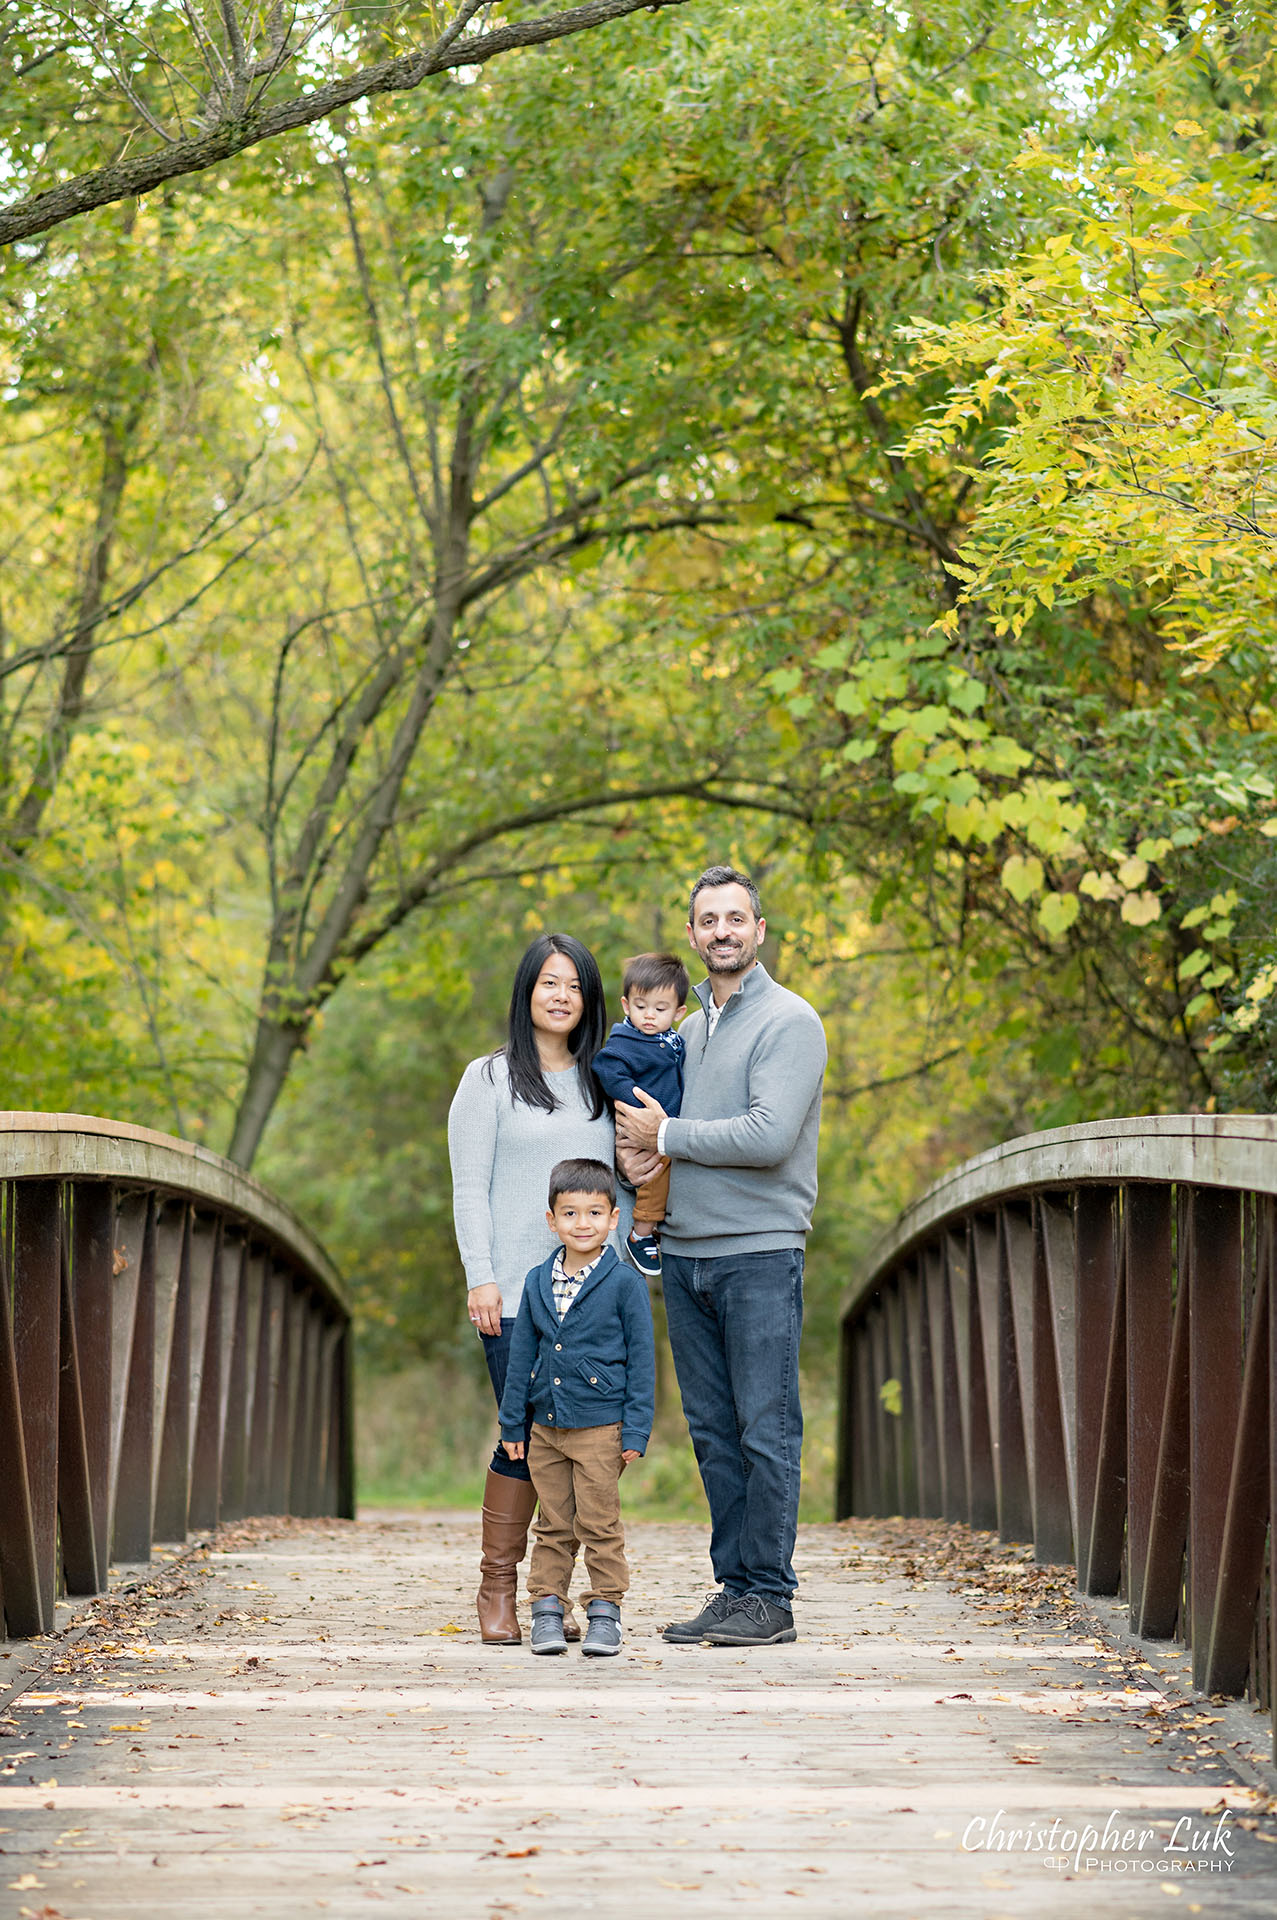 Christopher Luk Family Photographer Toronto Markham Unionville Autumn Fall Leaves Natural Candid Photojournalistic Sons Brothers Baby Boys Bridge Father Dad Mother Mom Motherhood Fatherhood Smile